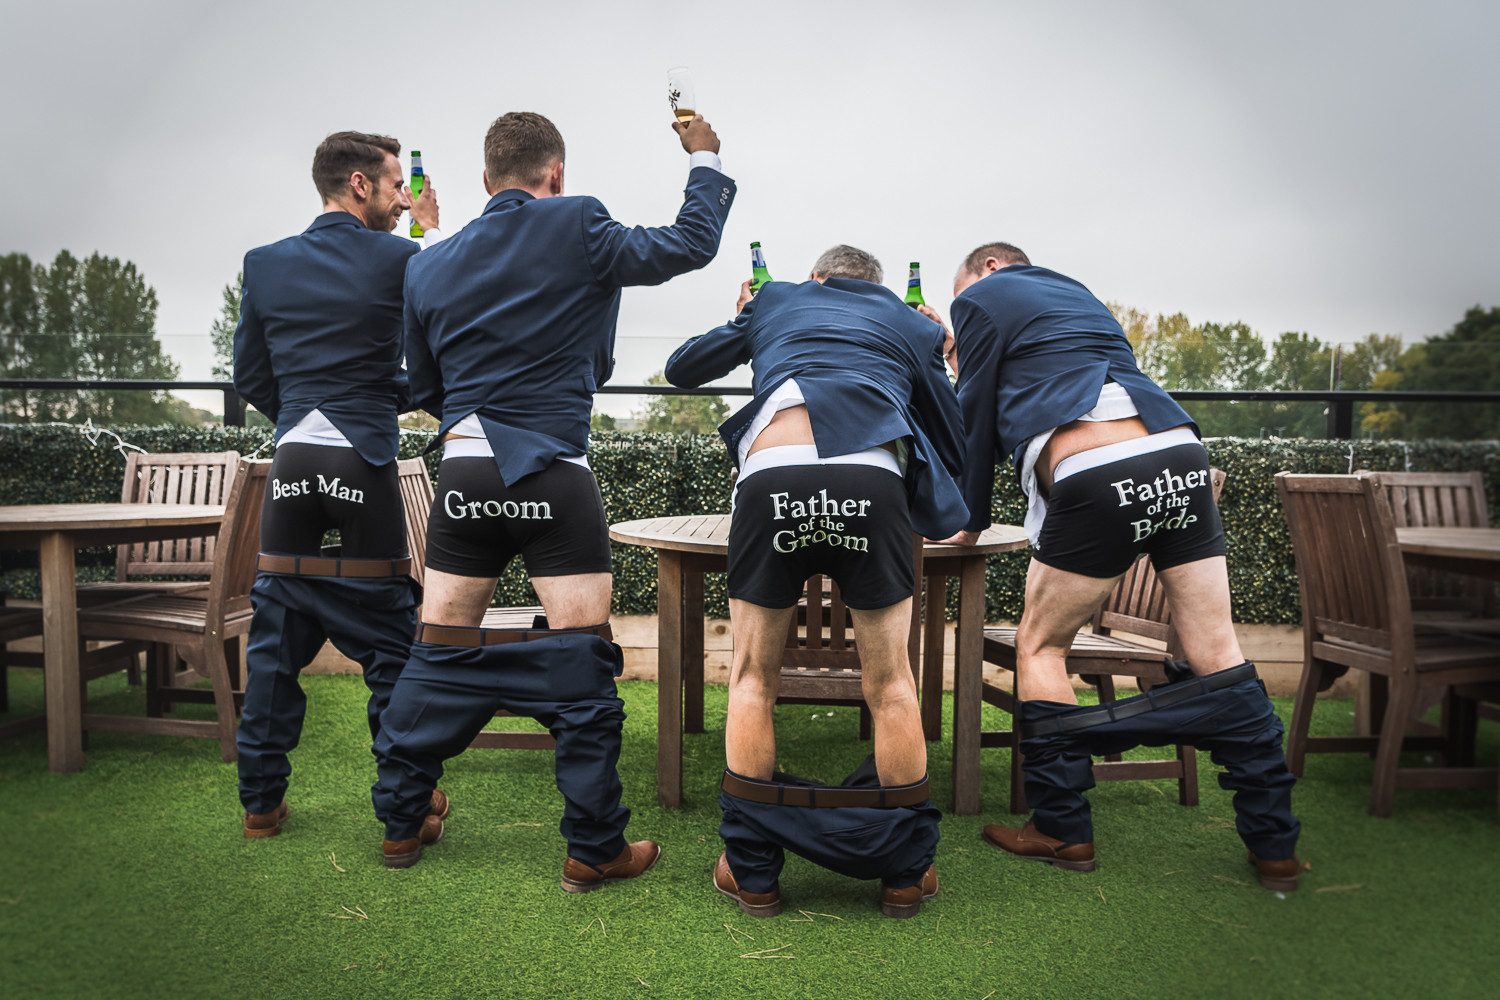 The groom, best man, and fathers of the bride and groom are photographed showing personalised, novelty underwear.